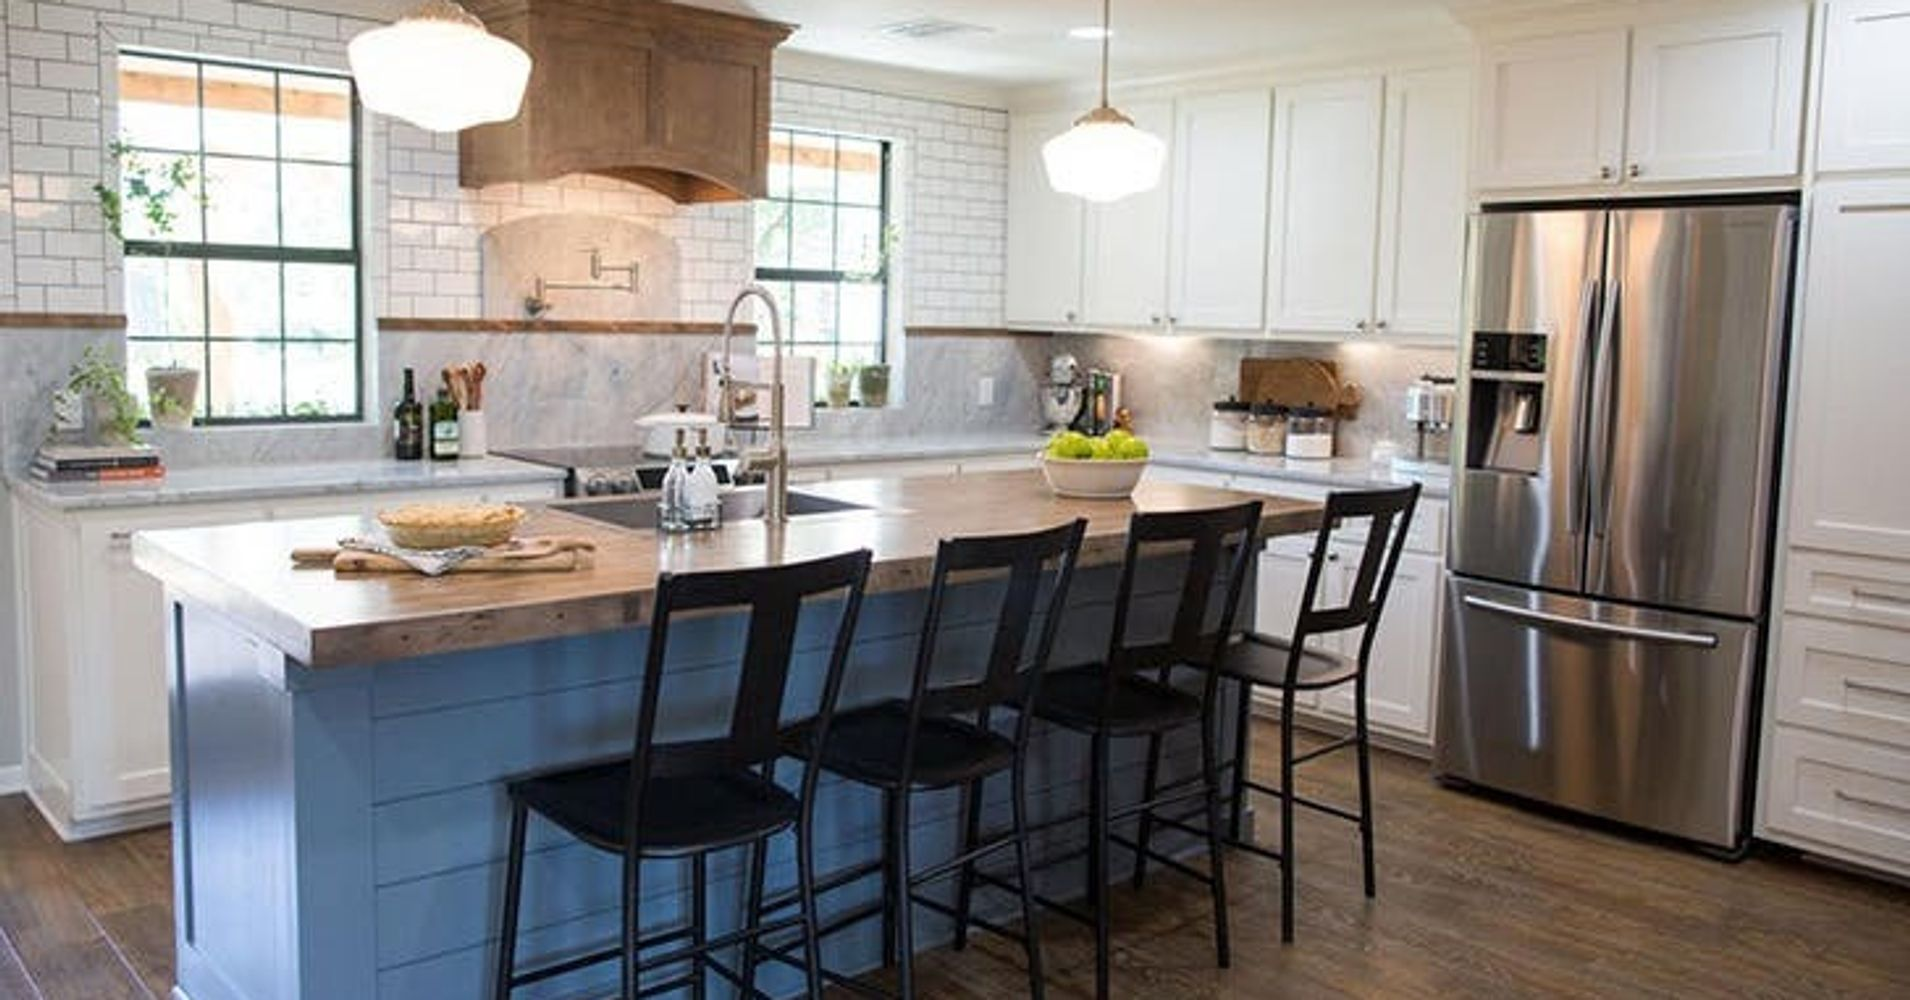 10 Decor Lessons We Learned From Joanna Gaines None Of